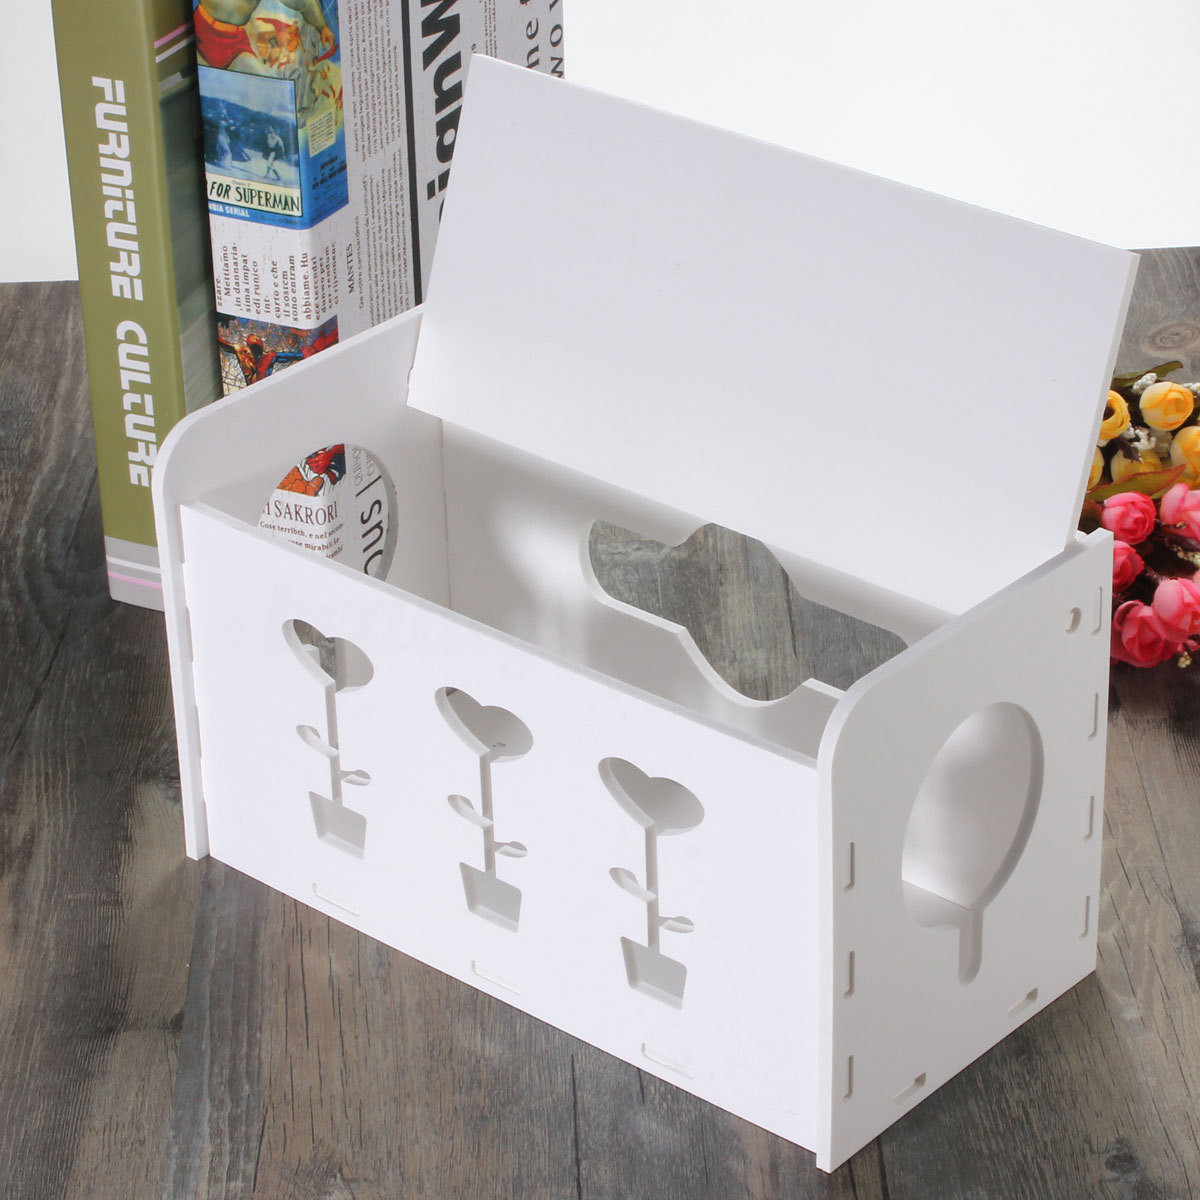 DIY Cable Management Box  Excelvan DIY Cable Storage Box Tidy Wire Management